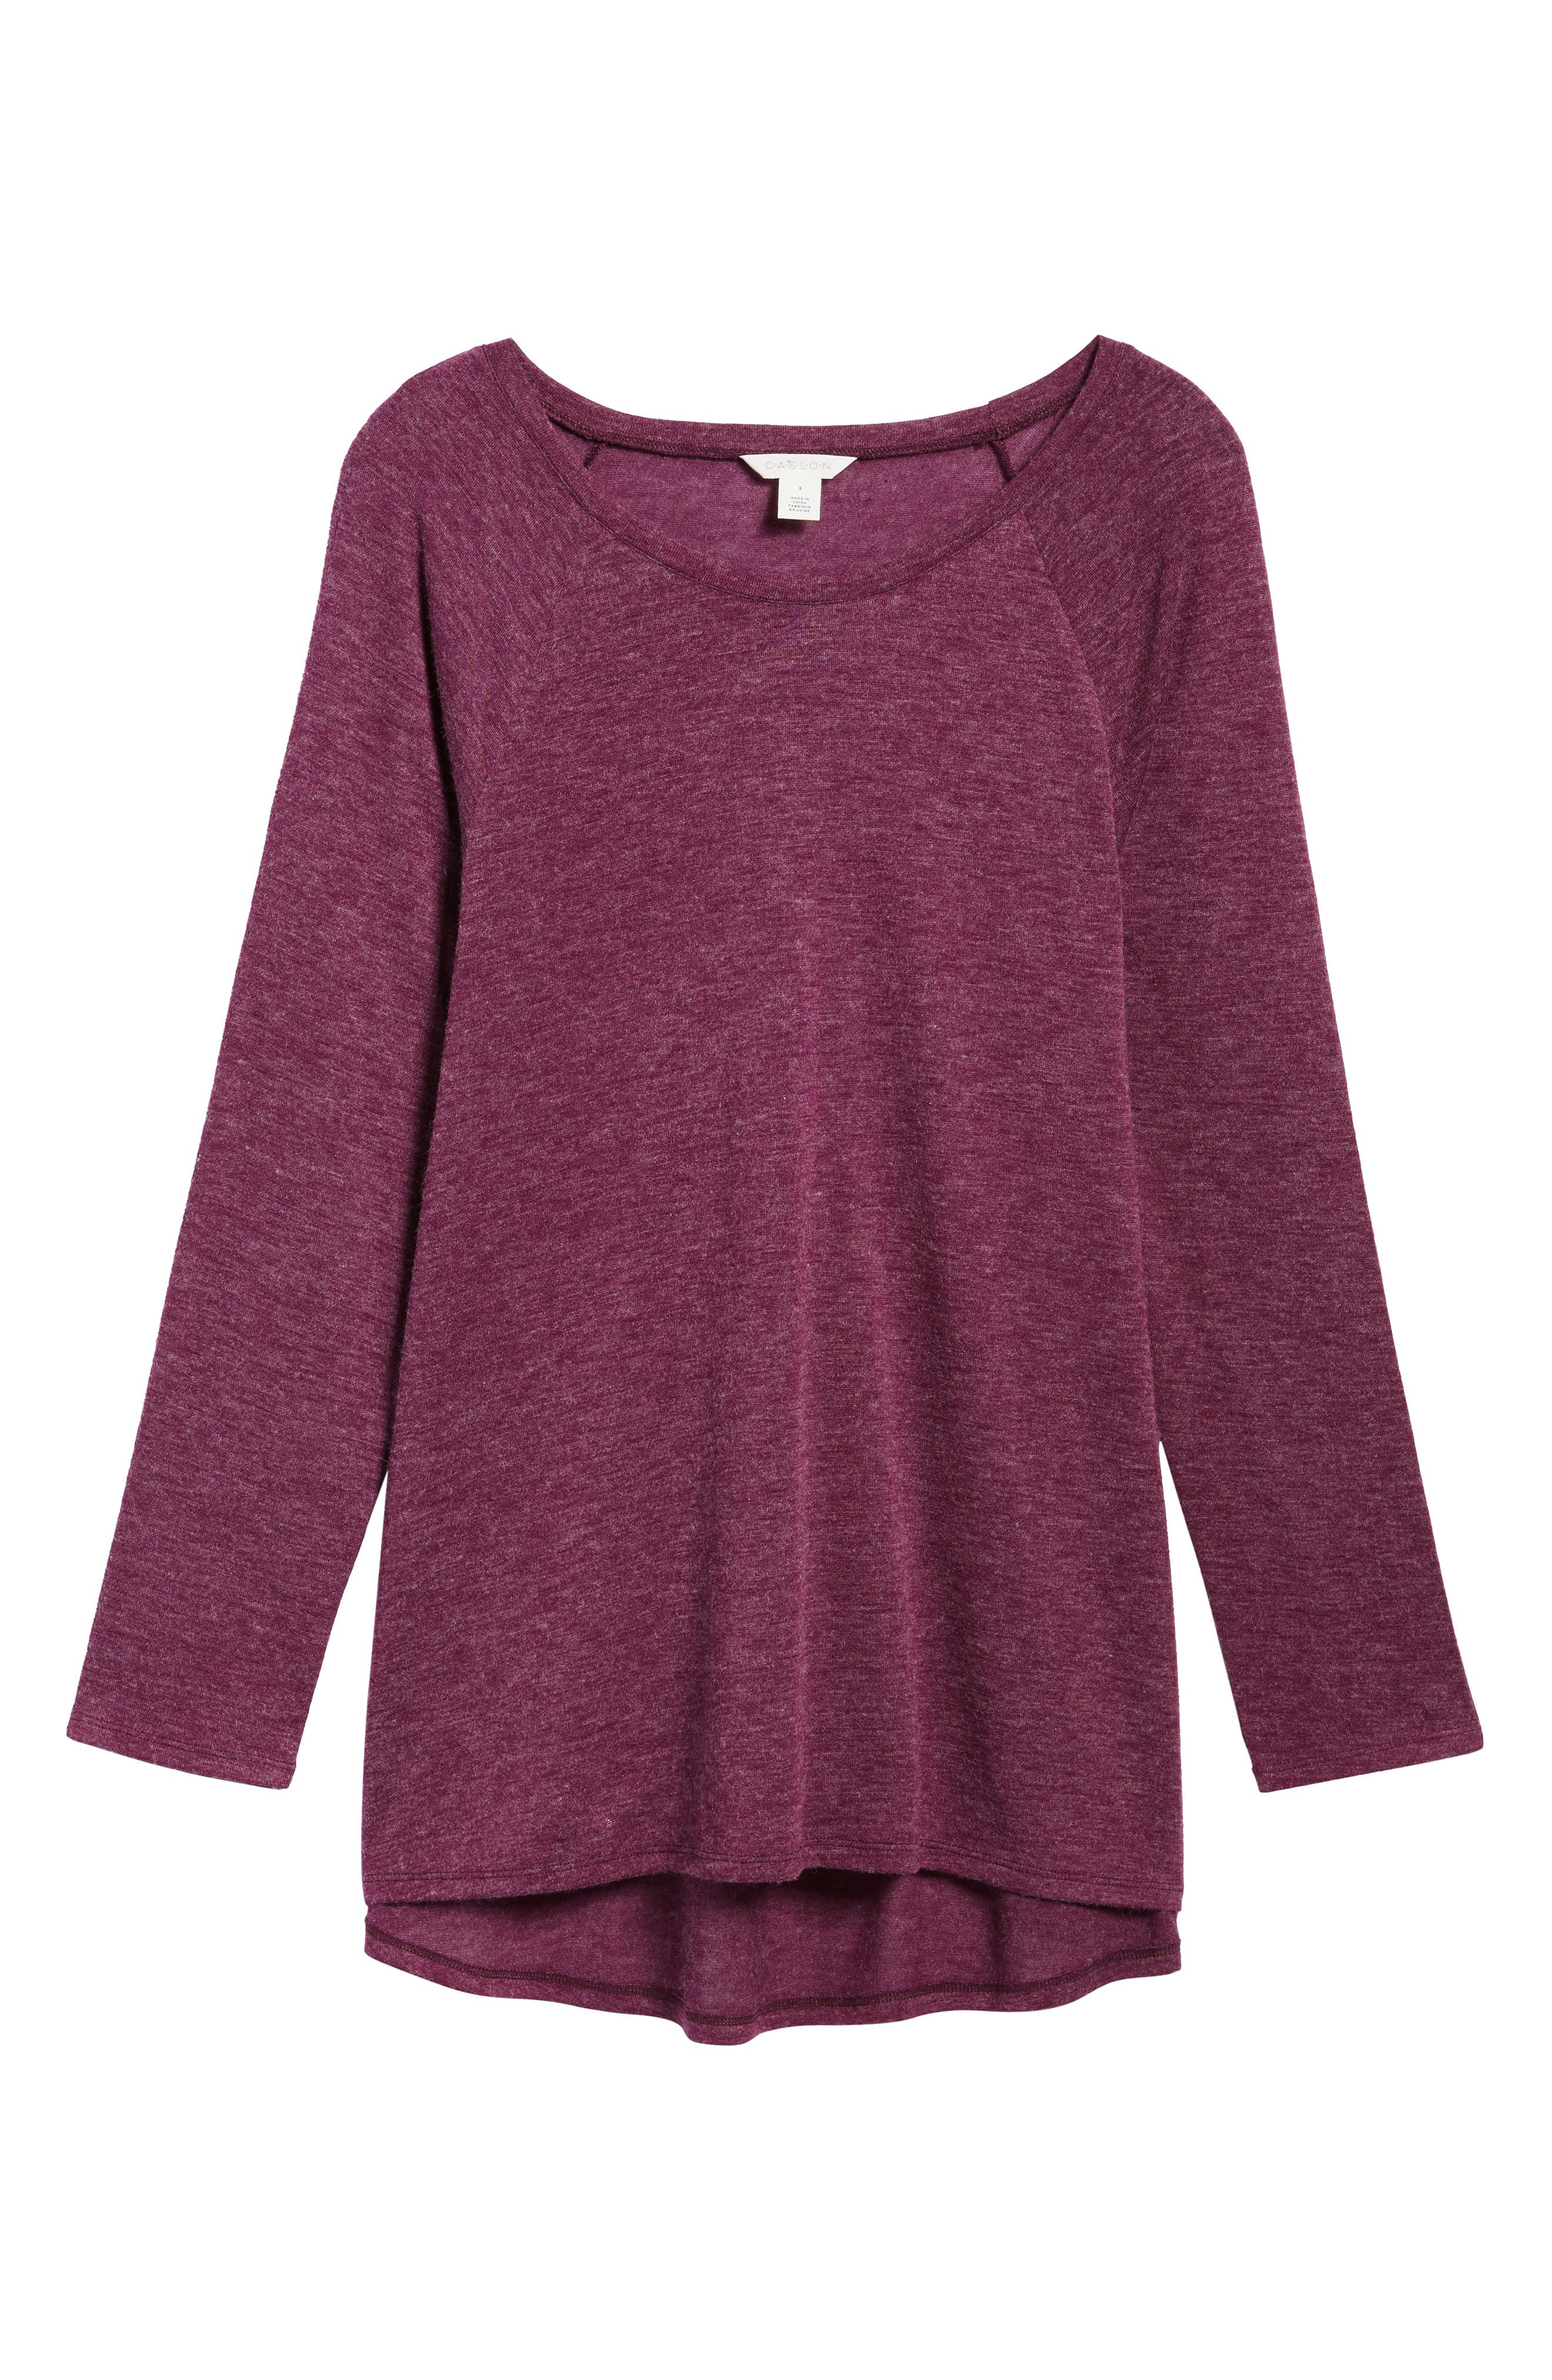 High/Low Tunic Sweatshirt,                             Alternate thumbnail 6, color,                             Mulberry